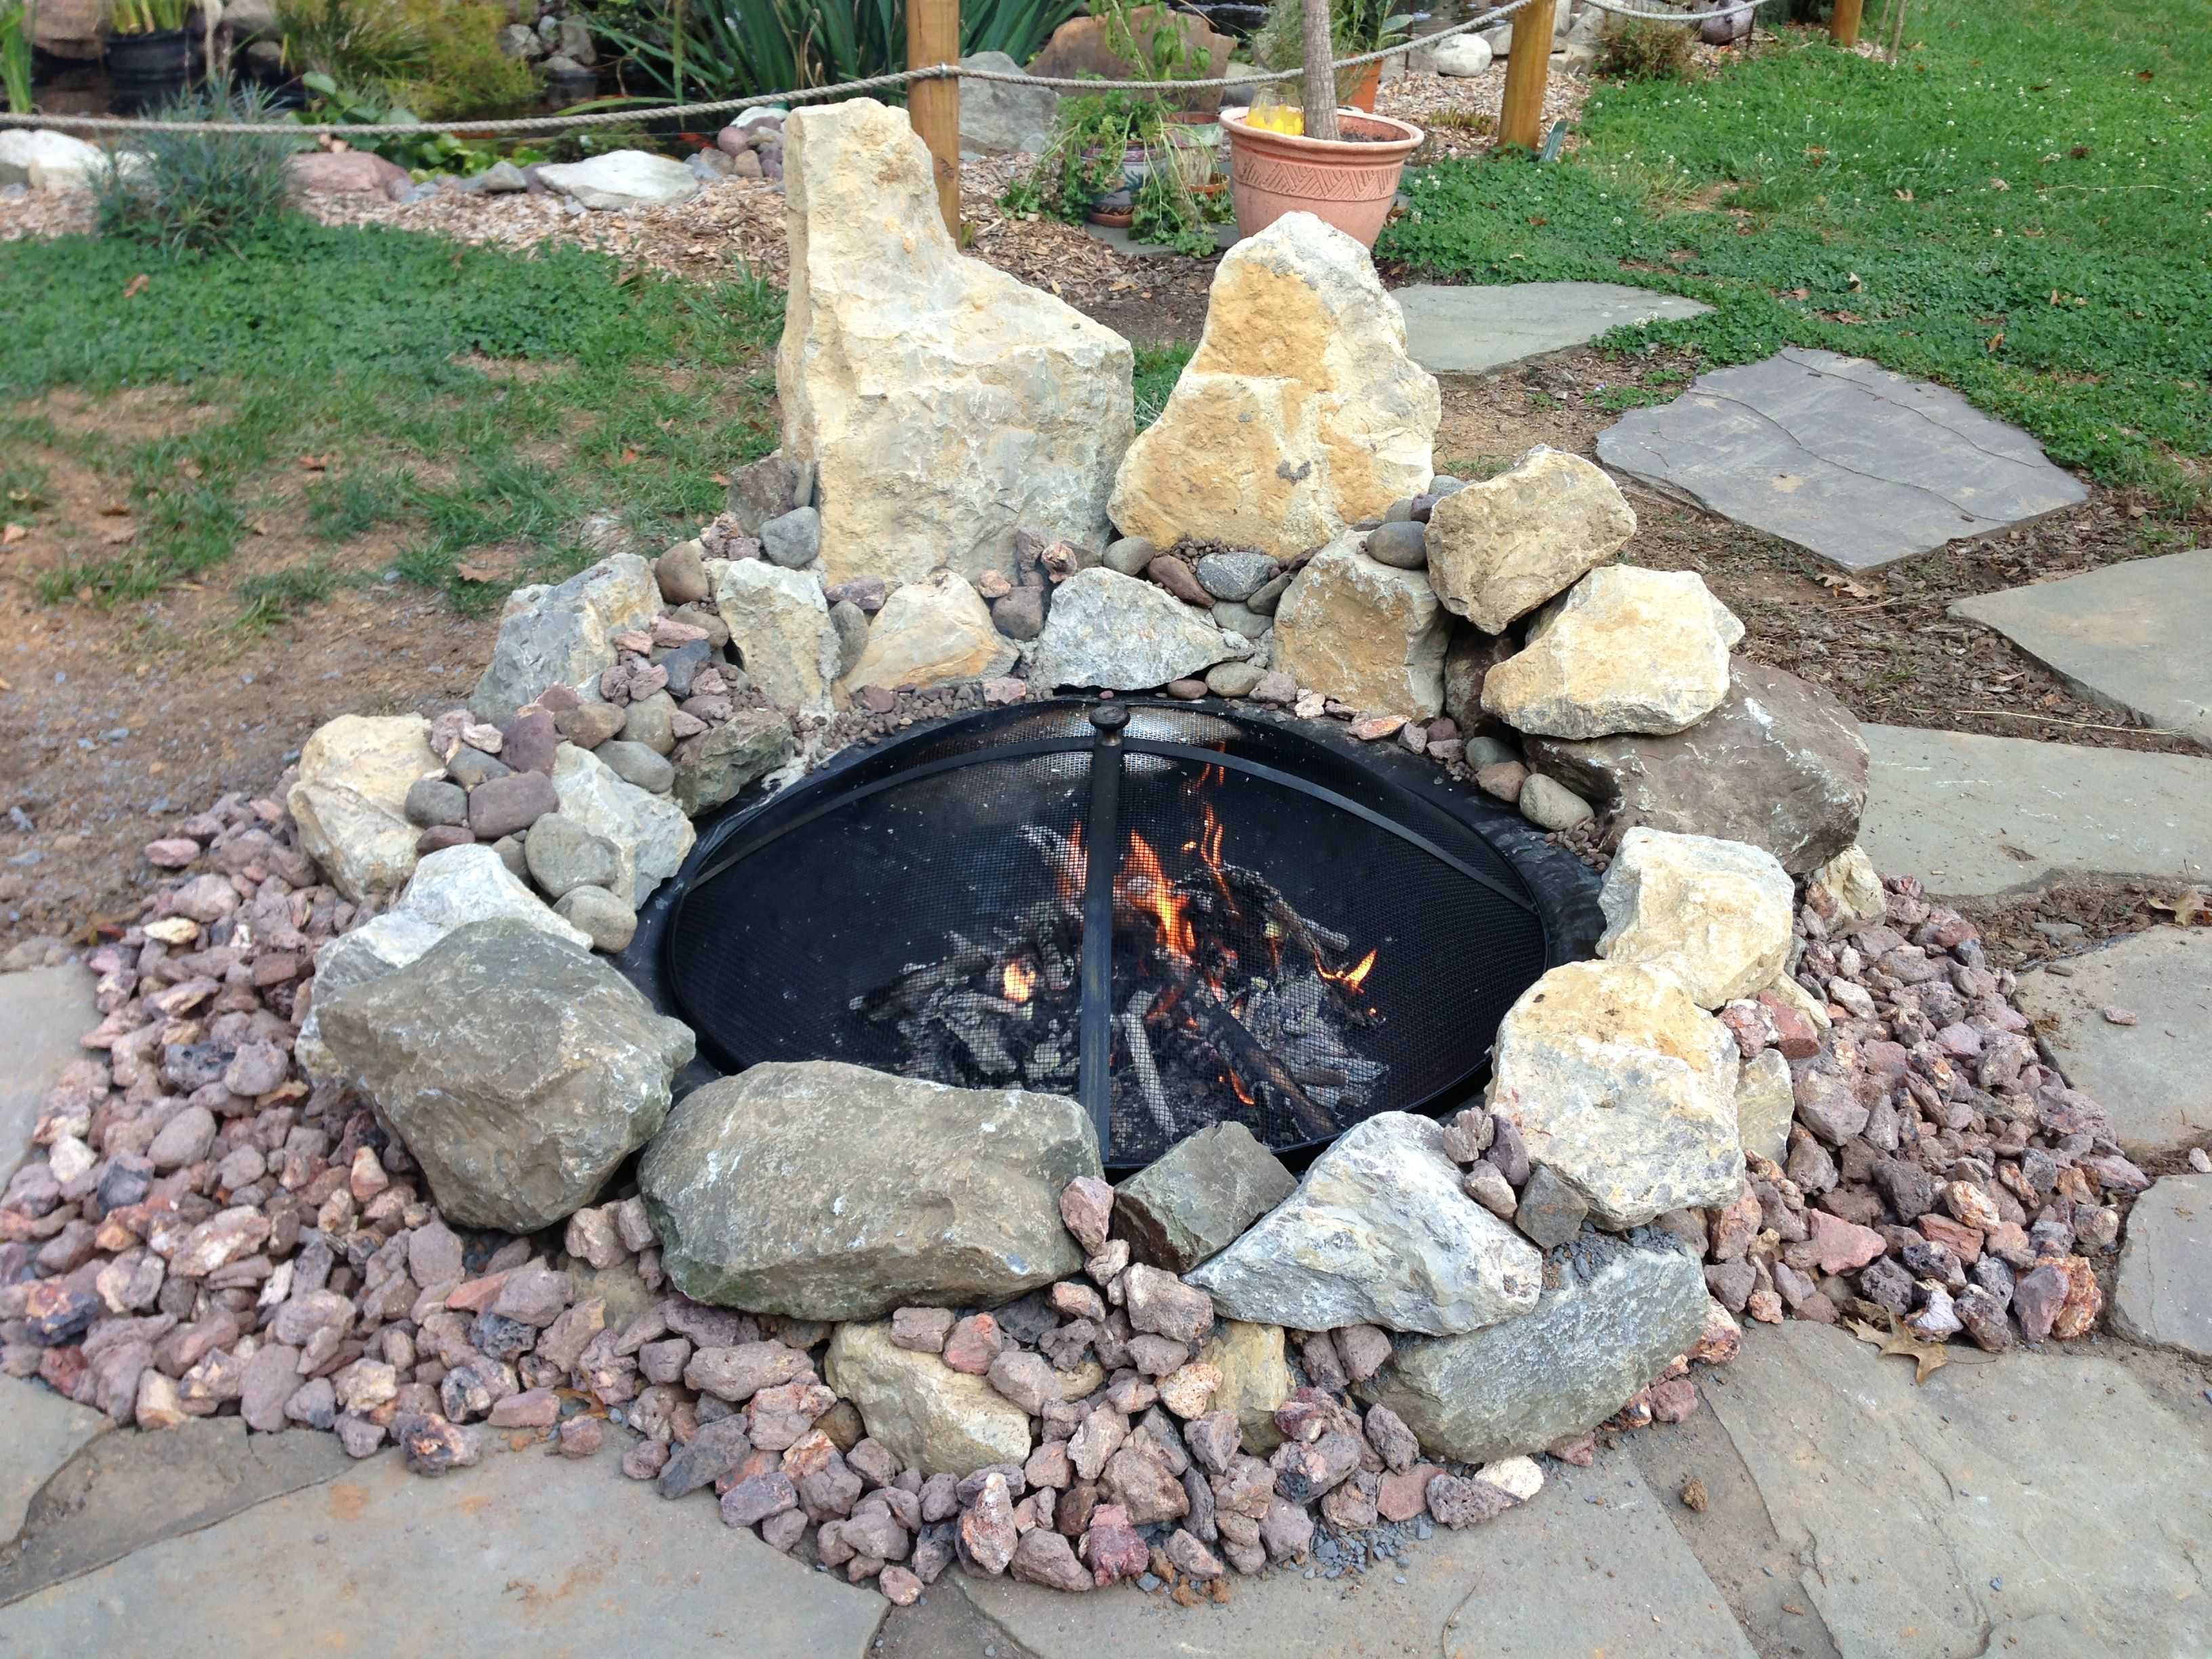 Backyard Fire Pit Made From Free Stones Found On The Roadside Bring Them Home Then Go To Home Depot And Buy A 50 00 Fire Pit Liner Fire Pit Fire Pit Designs